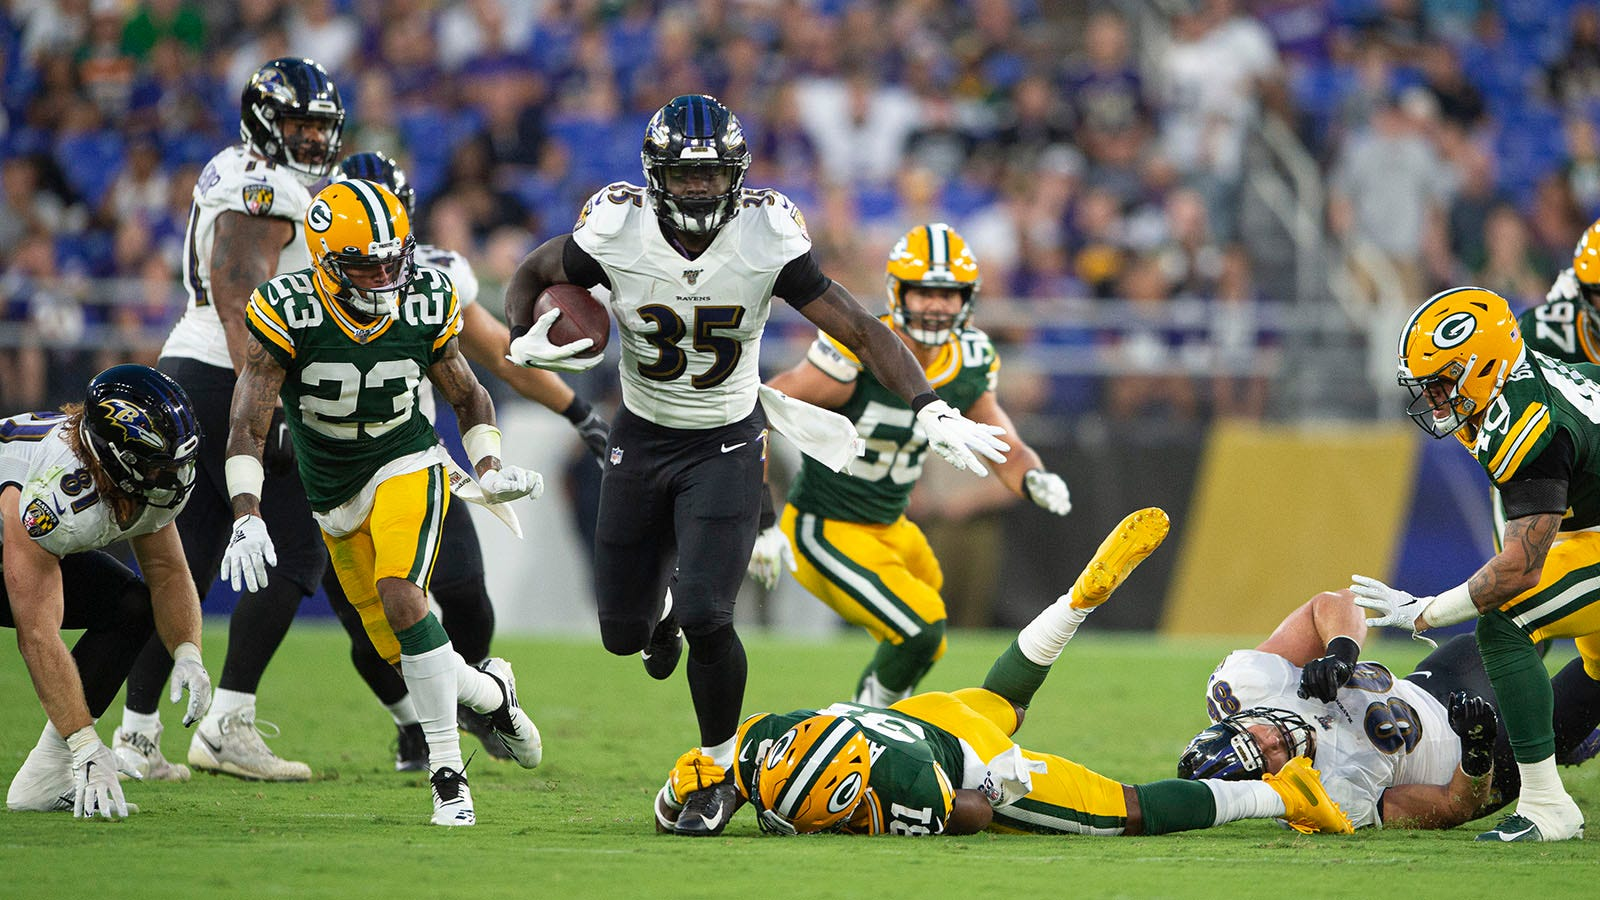 f7d14afd Upon Further Review: Green Bay Packers at Baltimore Ravens